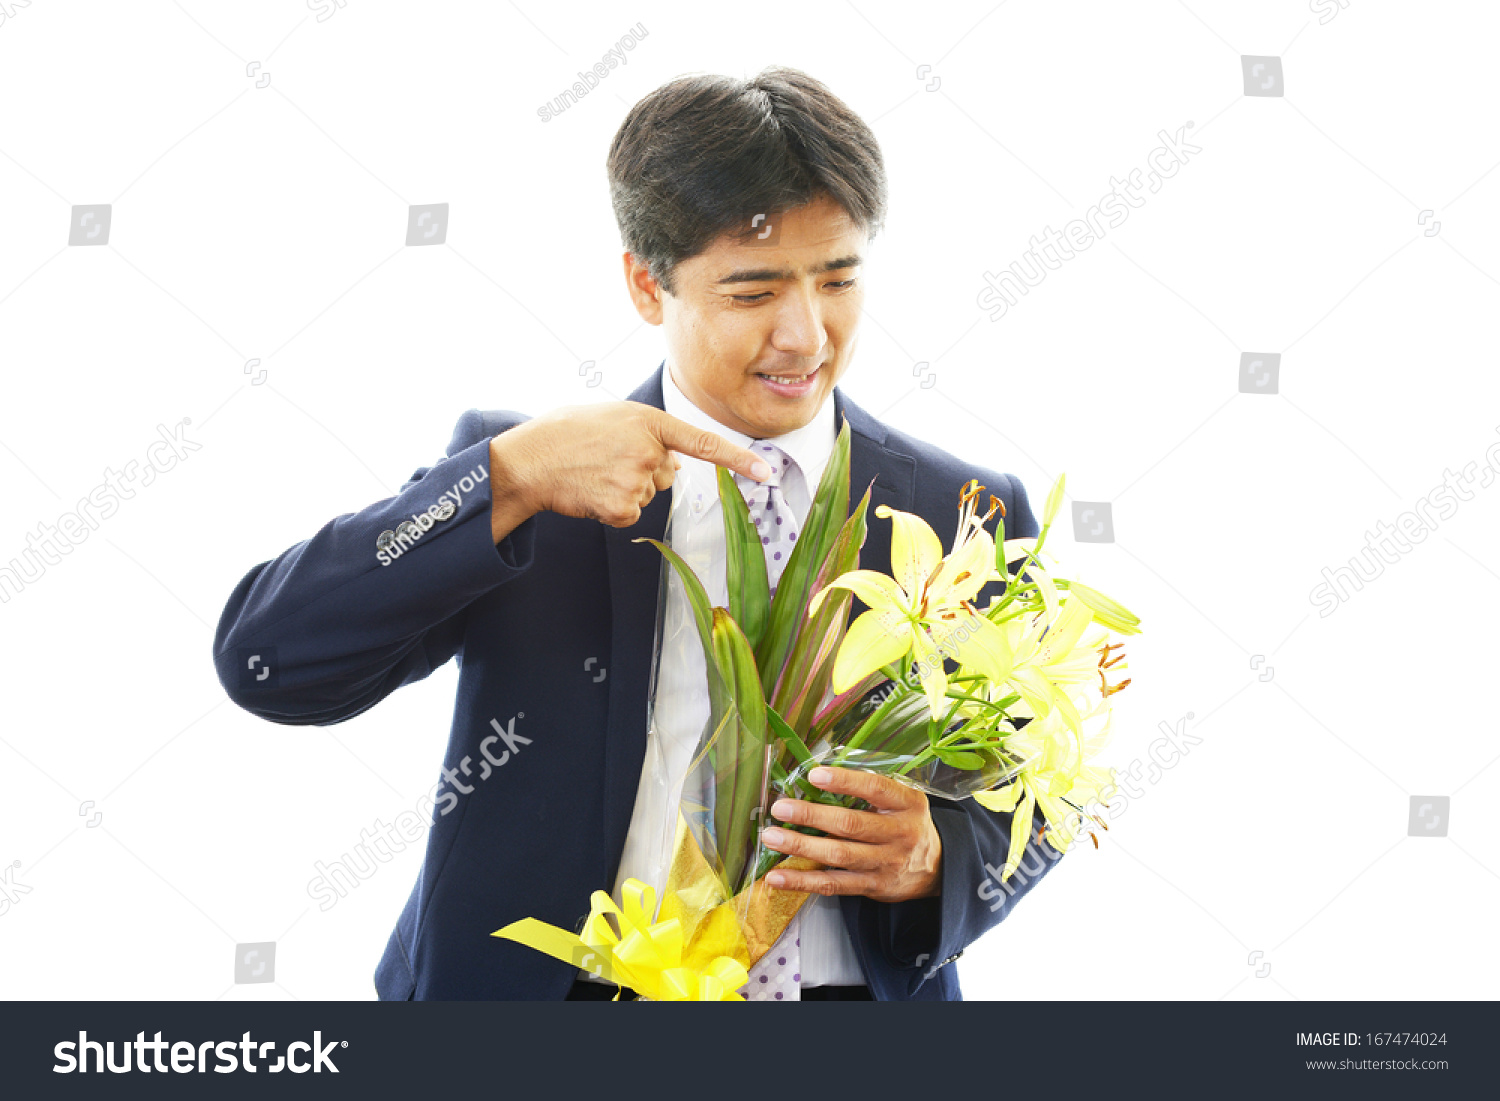 Man holding flower bouquet stock photo royalty free 167474024 man holding flower bouquet izmirmasajfo Image collections